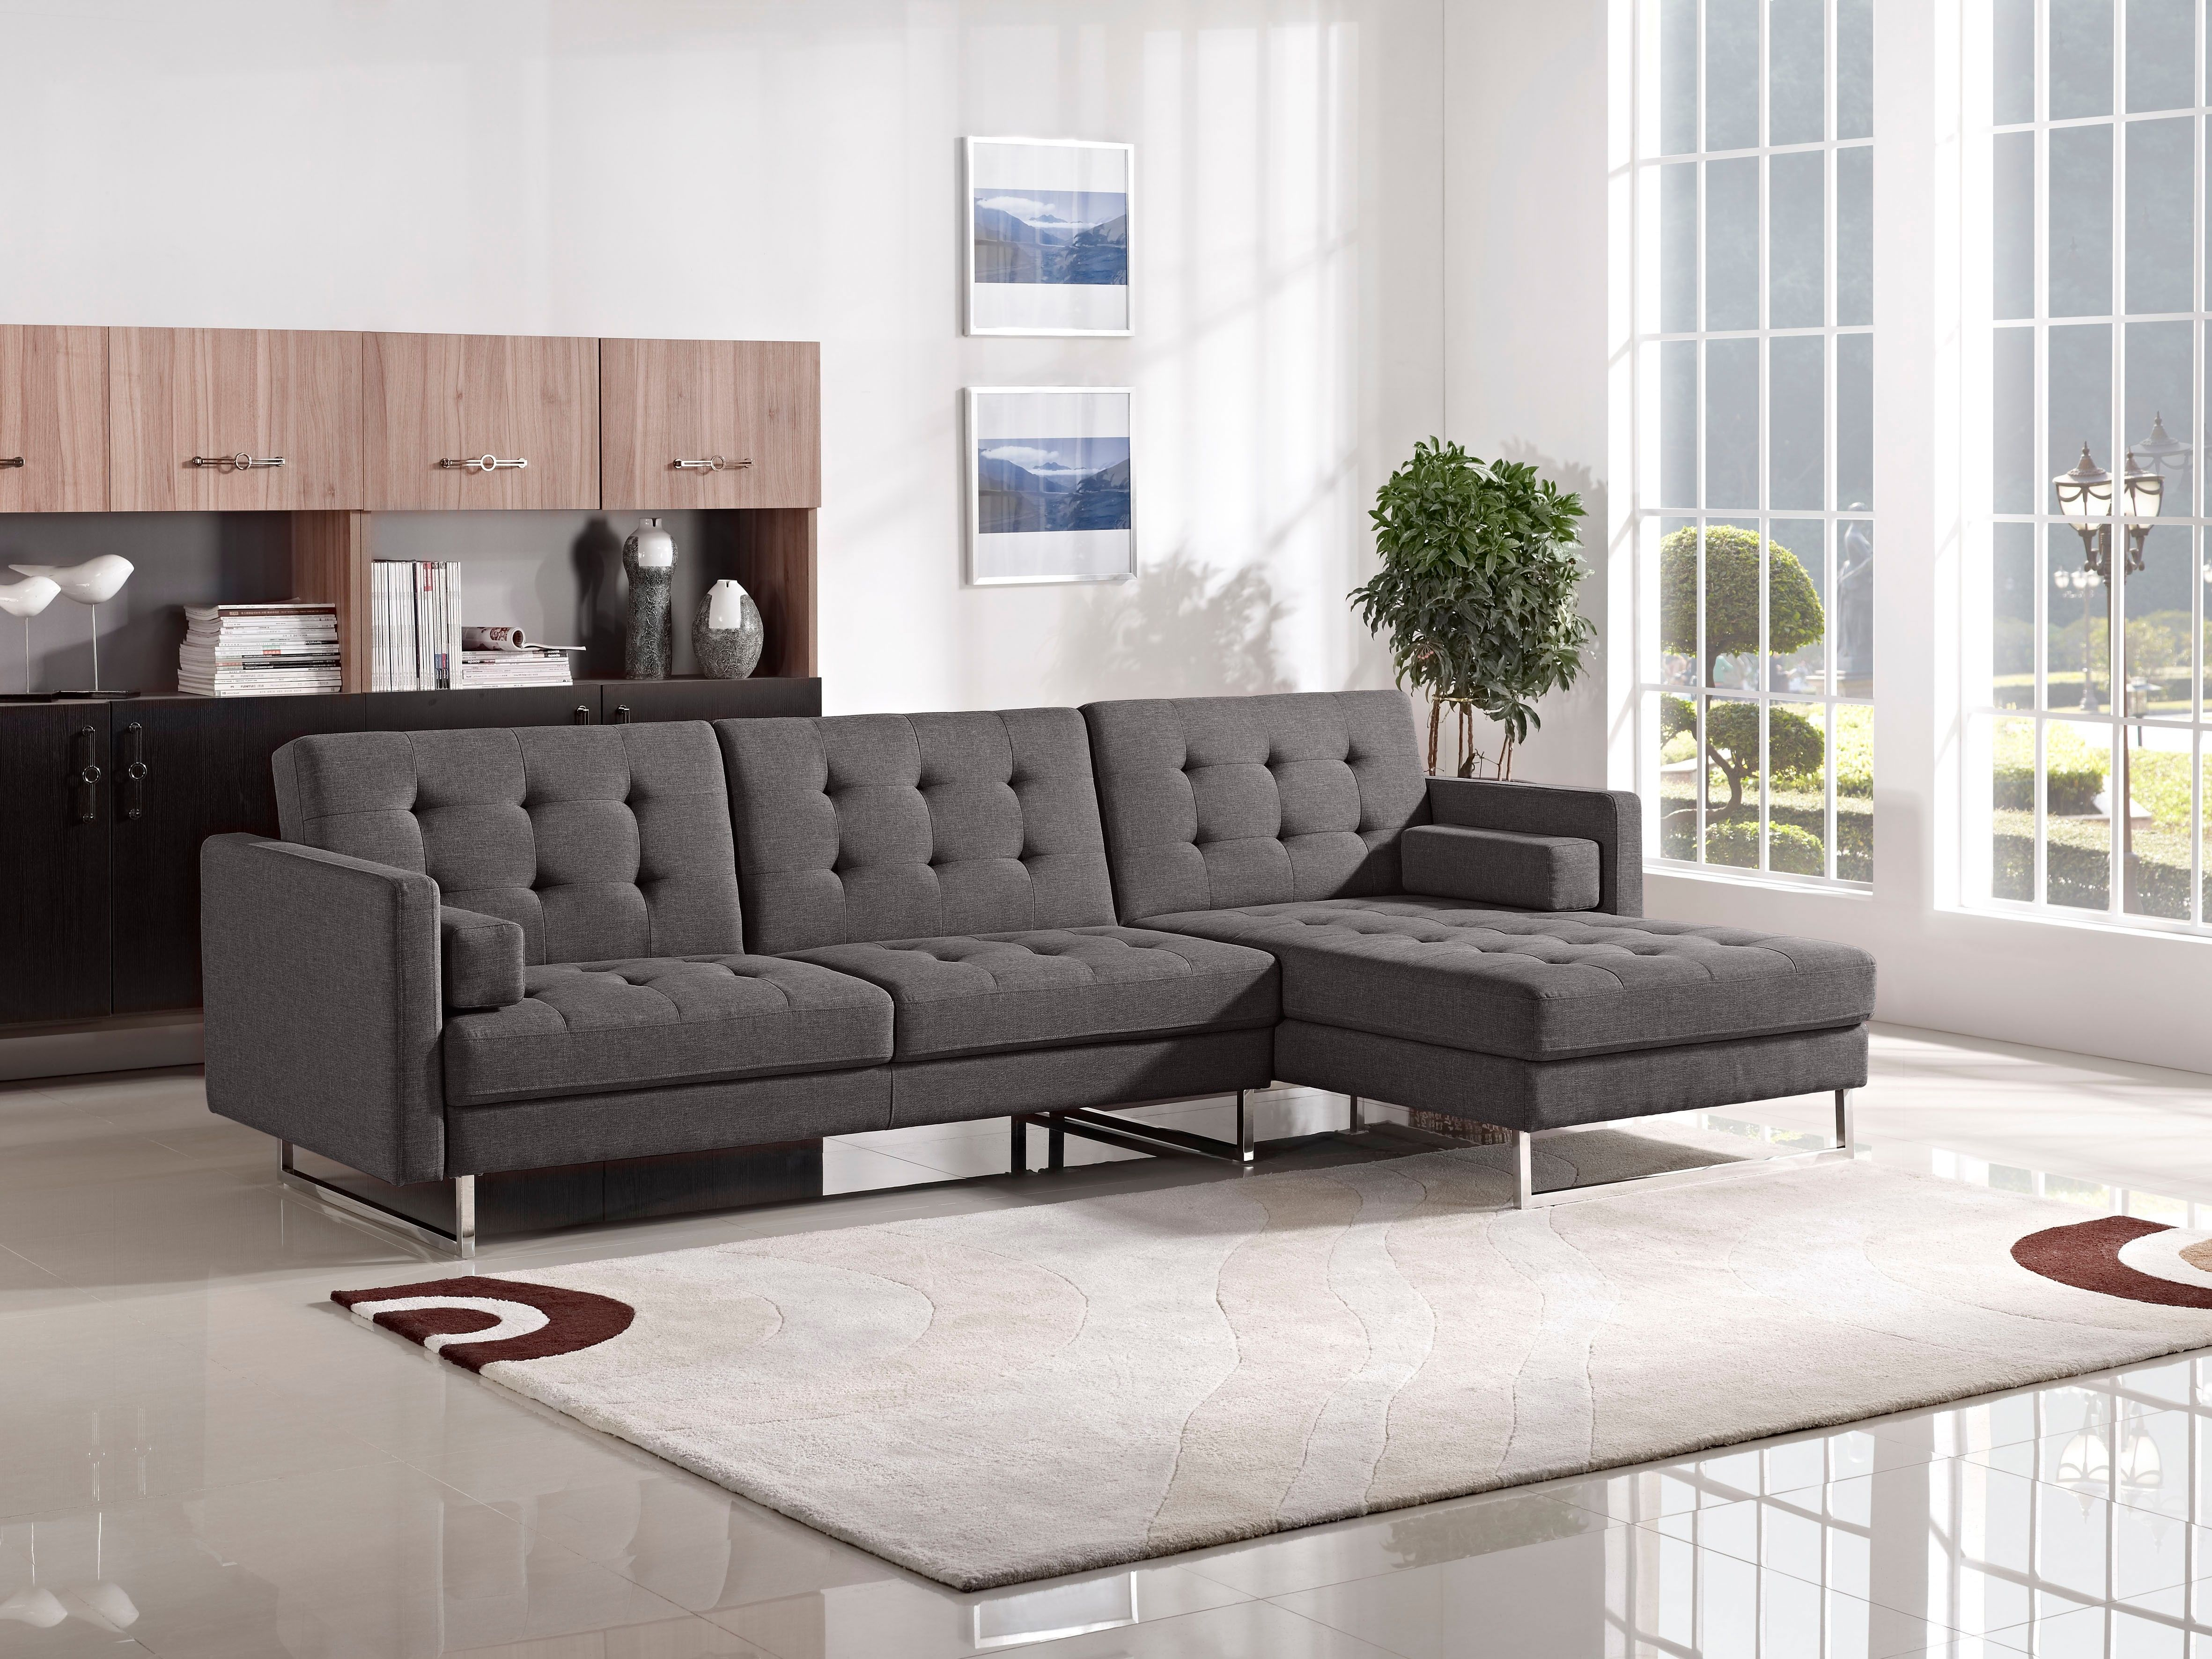 Sectional Sleeper Sofa Tufted Sectional Sofa Bed